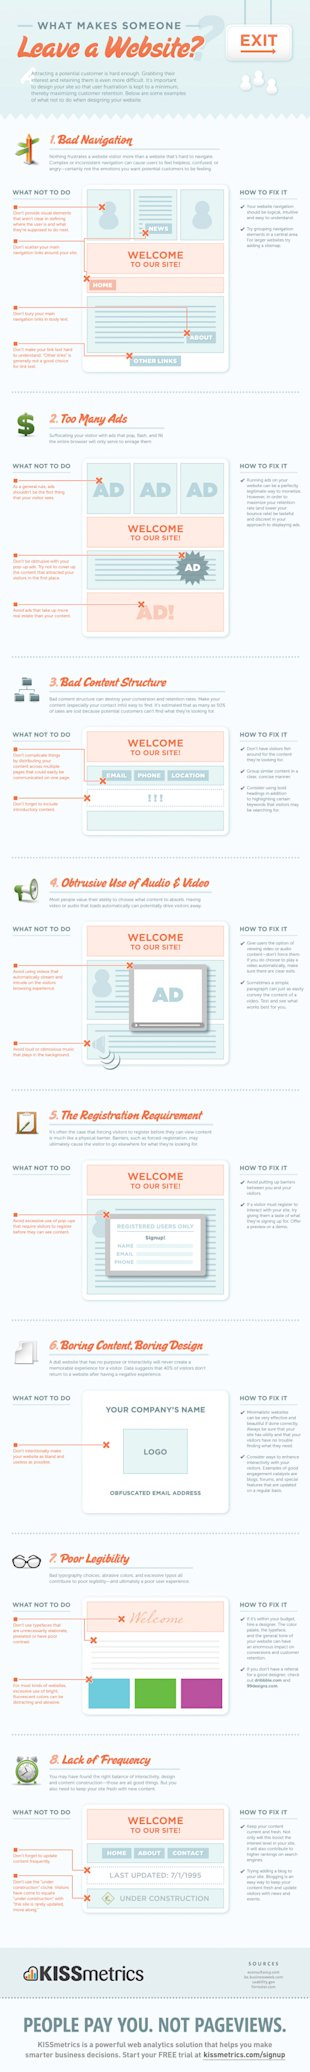 What Makes Someone Leave a Website [Infographic] image website design tips infographic